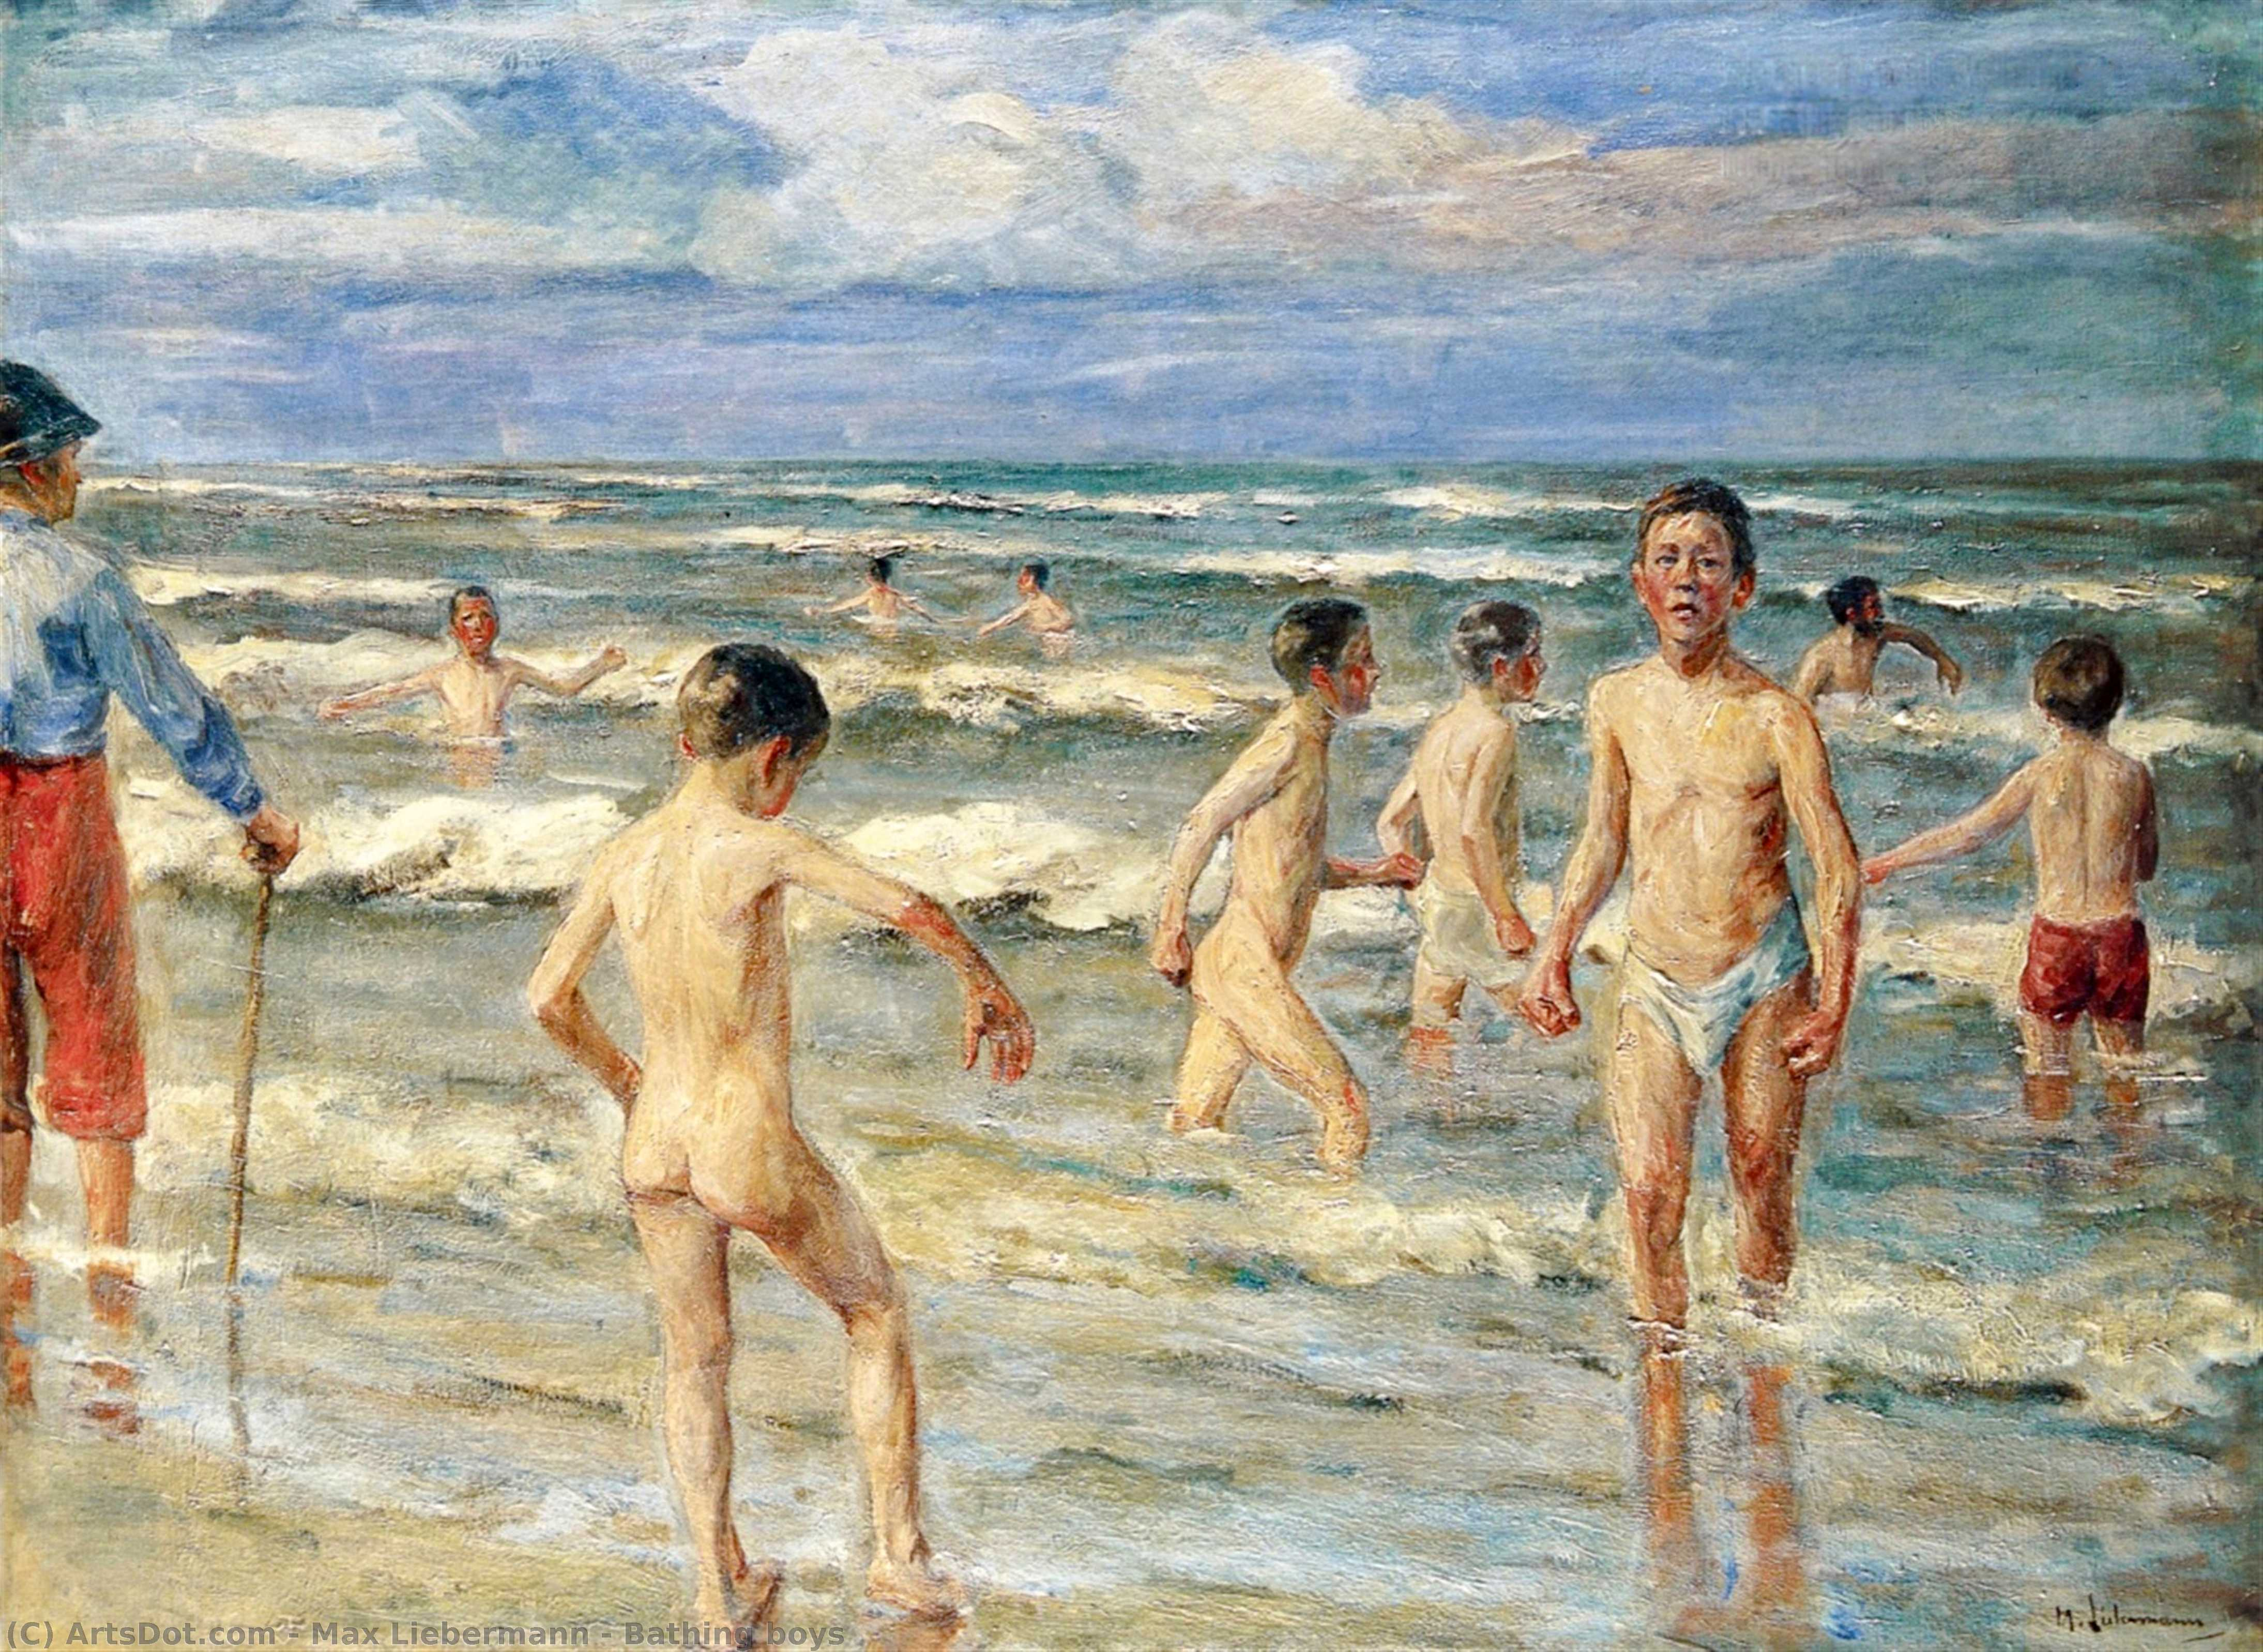 Wikioo.org - The Encyclopedia of Fine Arts - Painting, Artwork by Max Liebermann - Bathing boys